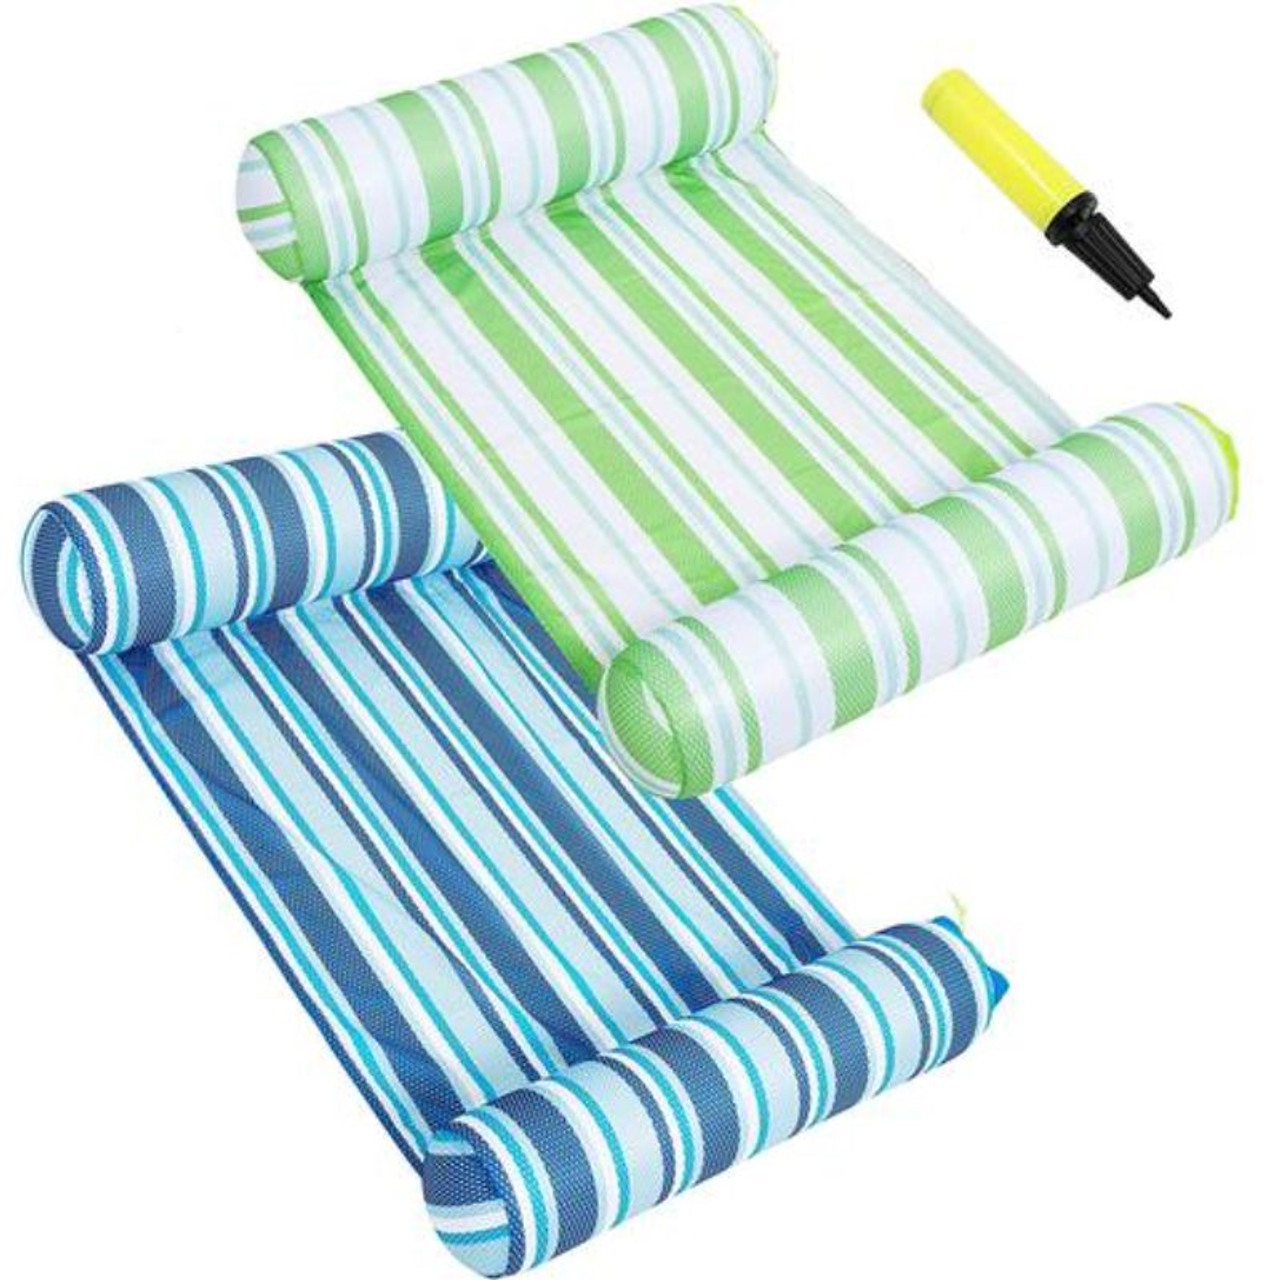 Inflatable Hammock Pool Lounger - 2 Pack